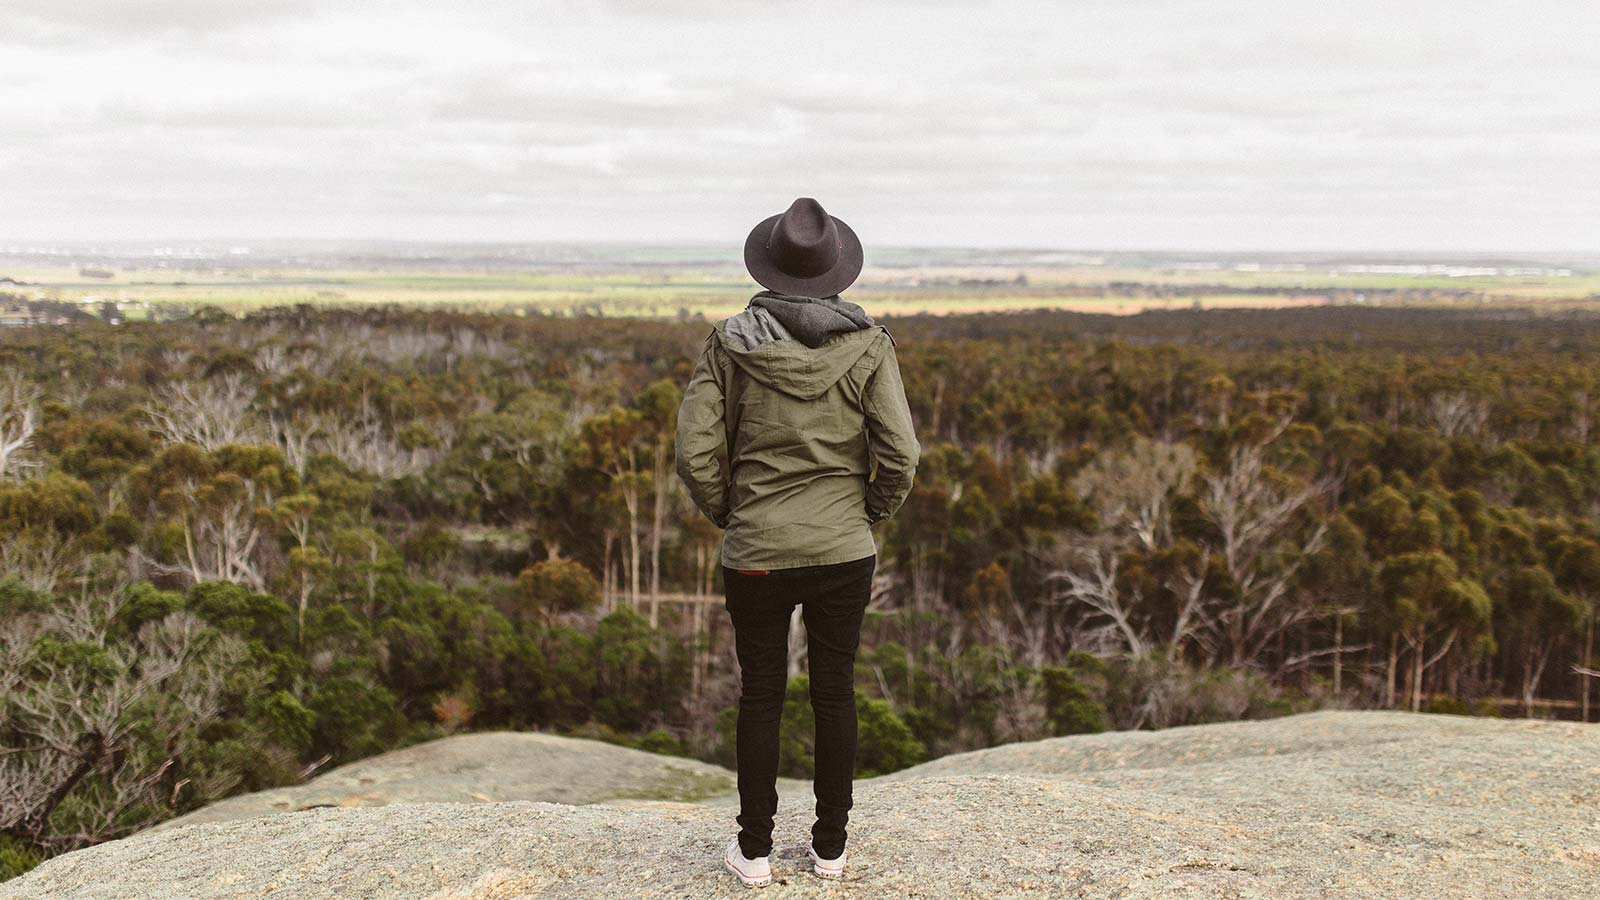 viewing the scenery on a rock